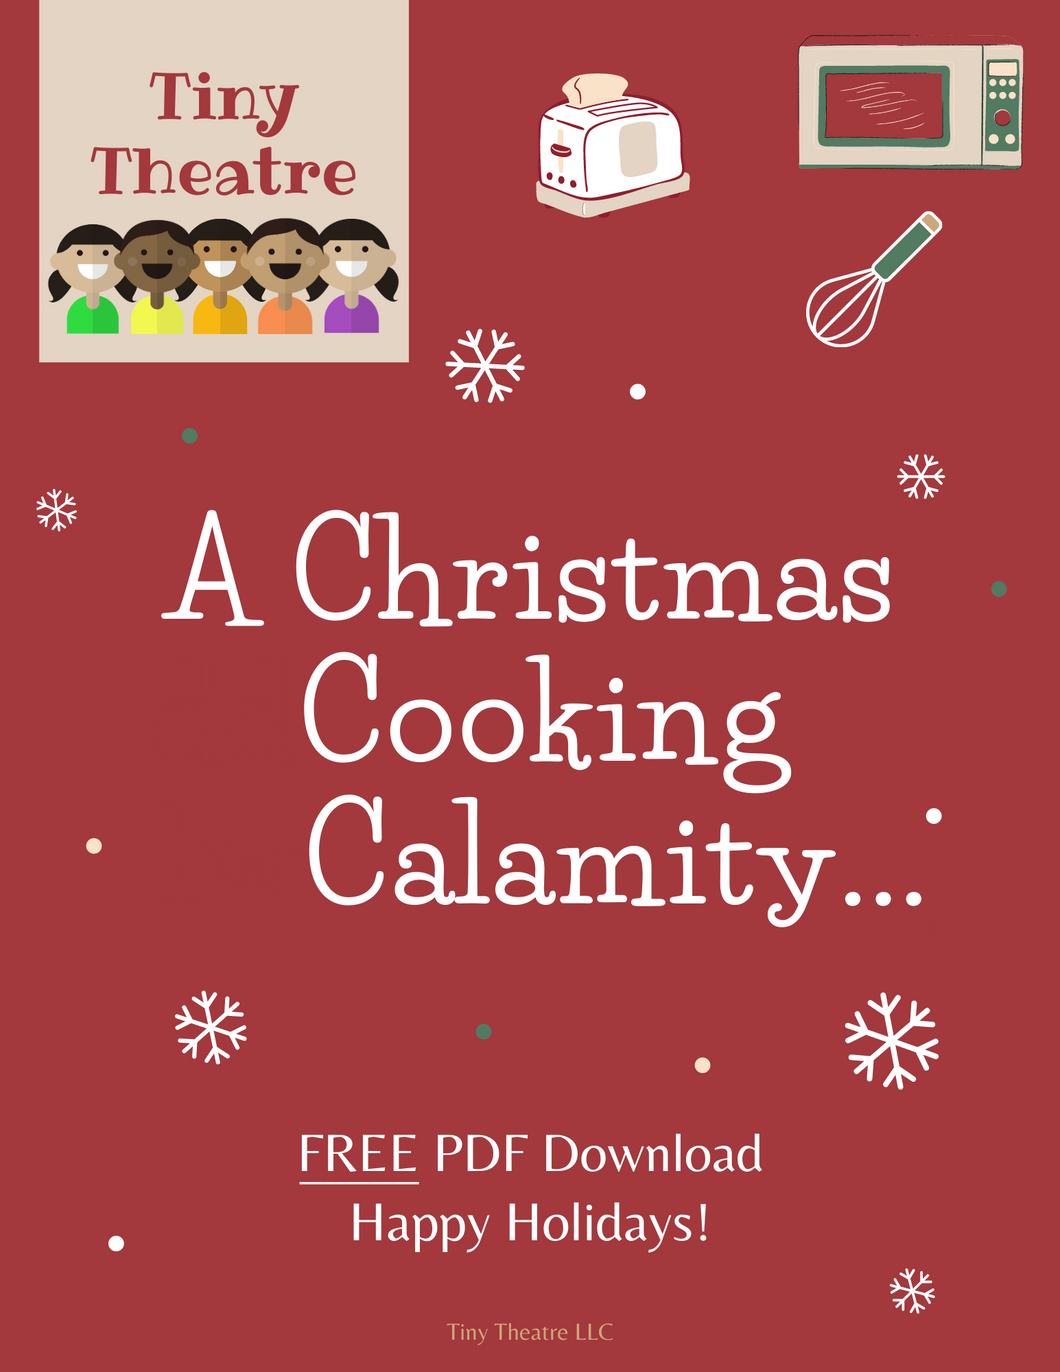 A Christmas Cooking Calamity